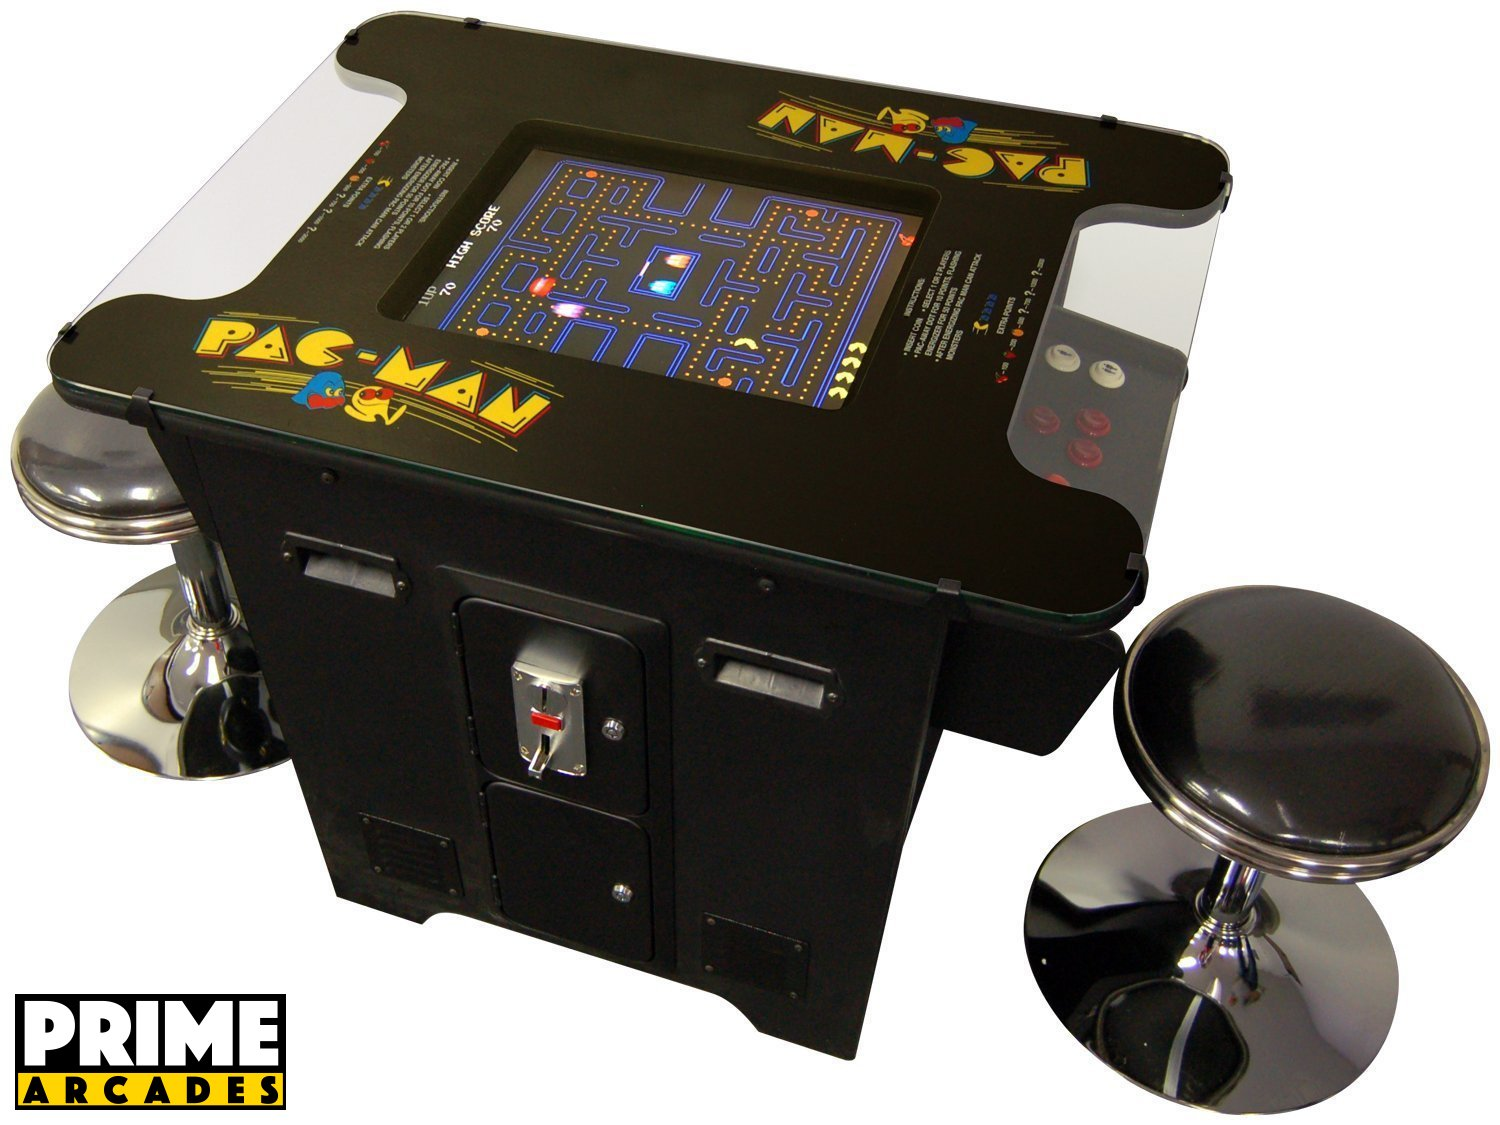 Cocktail Arcade Machine 60 Games in 1 Commerical Grade with Set of 2 Chrome Stools 5 Year Warranty